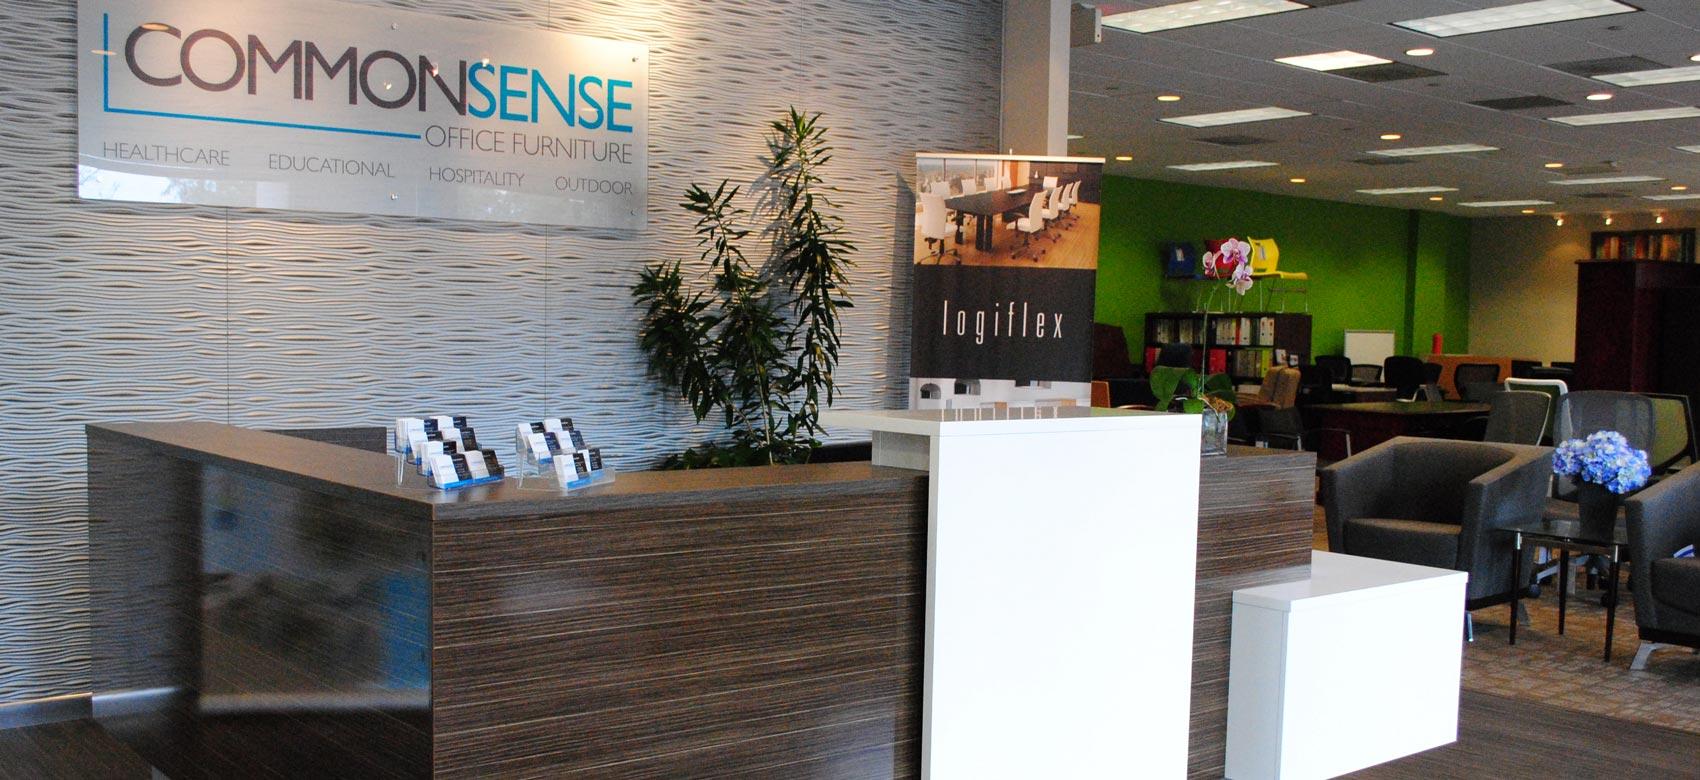 Superior Here At Common Sense Office Furniture ...